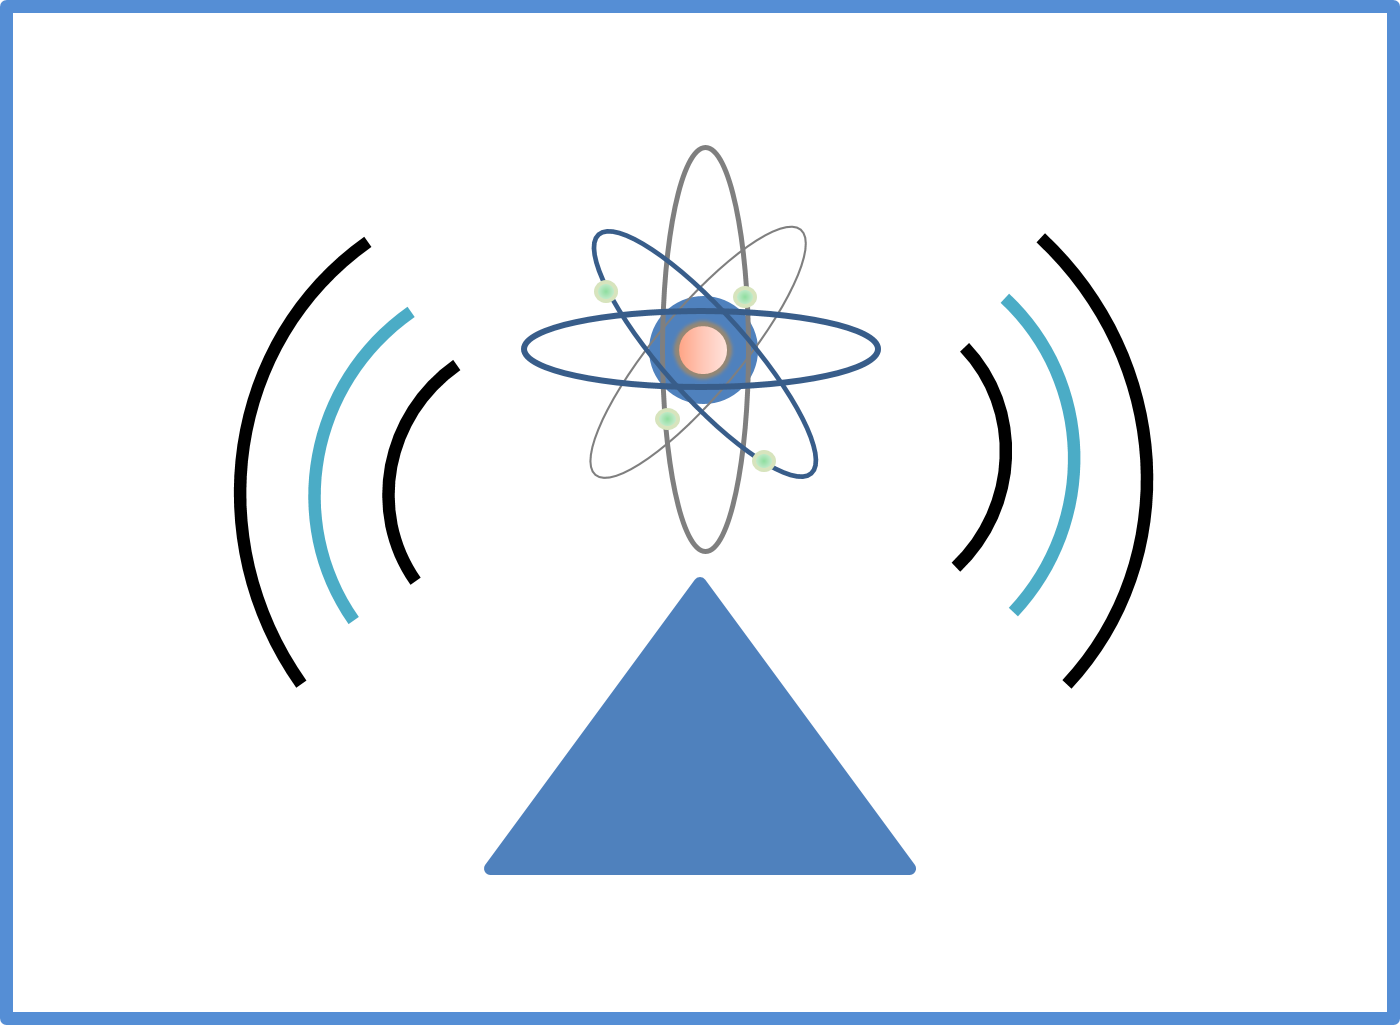 Radioisotopes icon